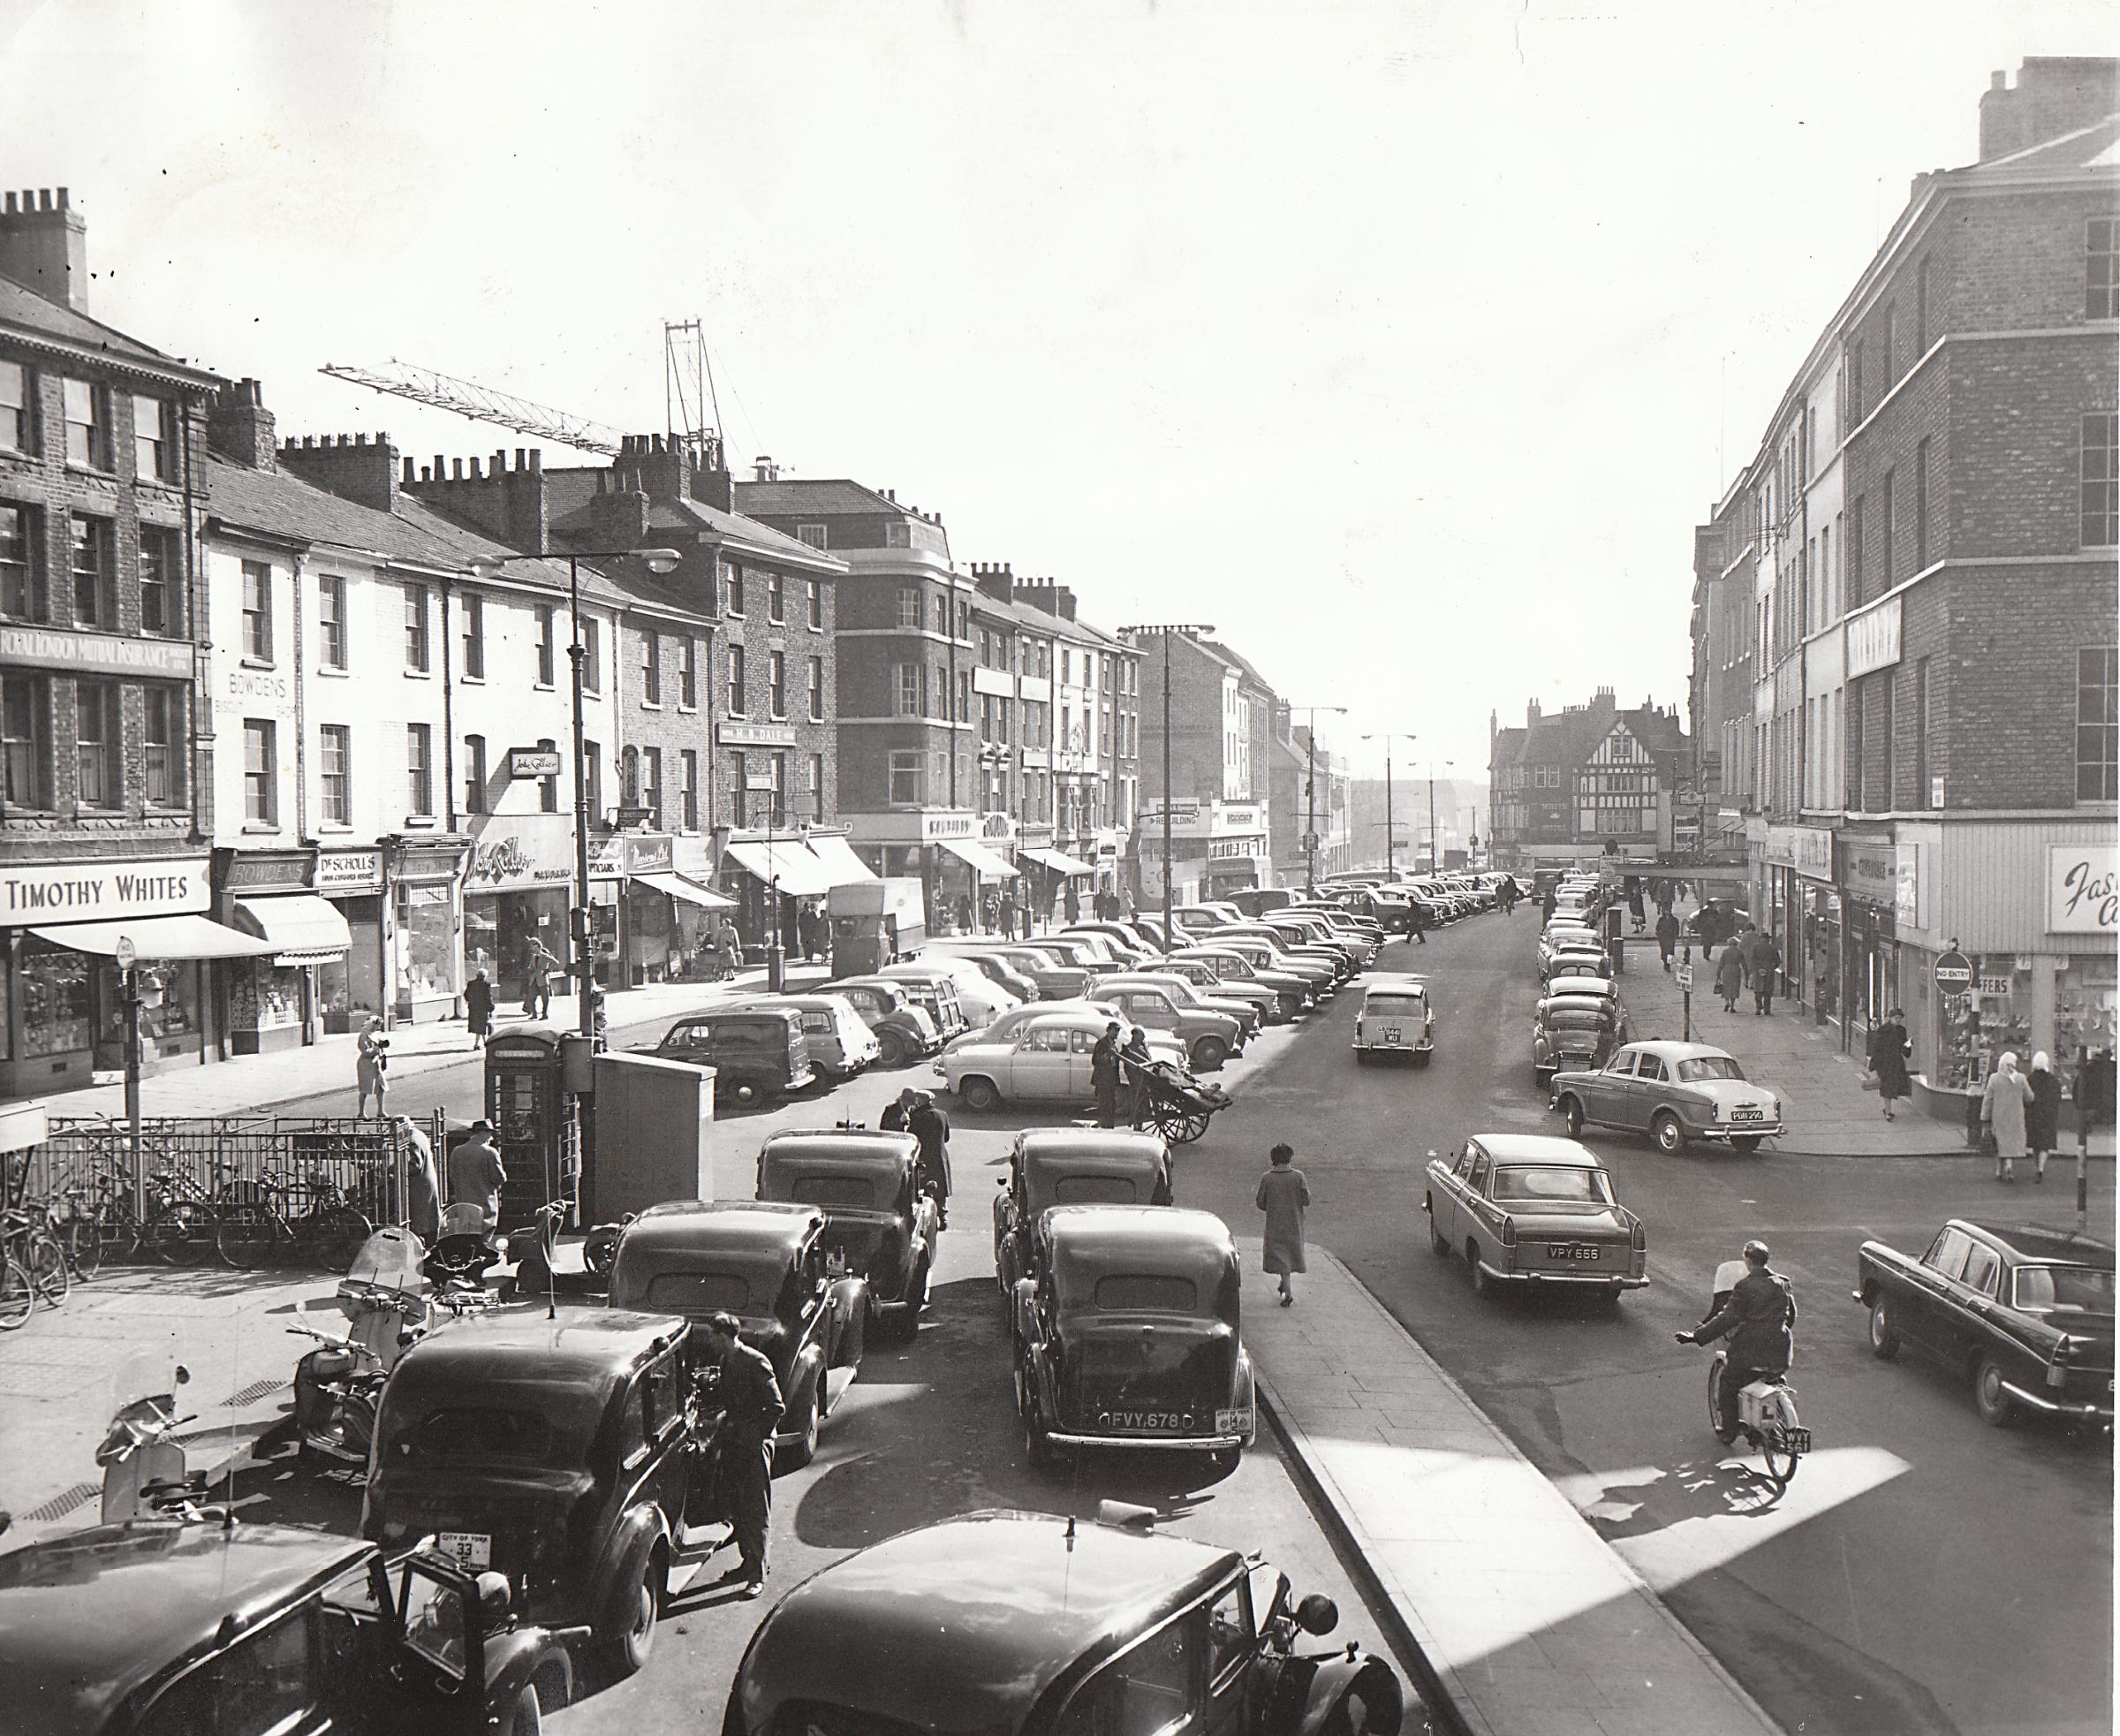 8 pictures of York from times gone by